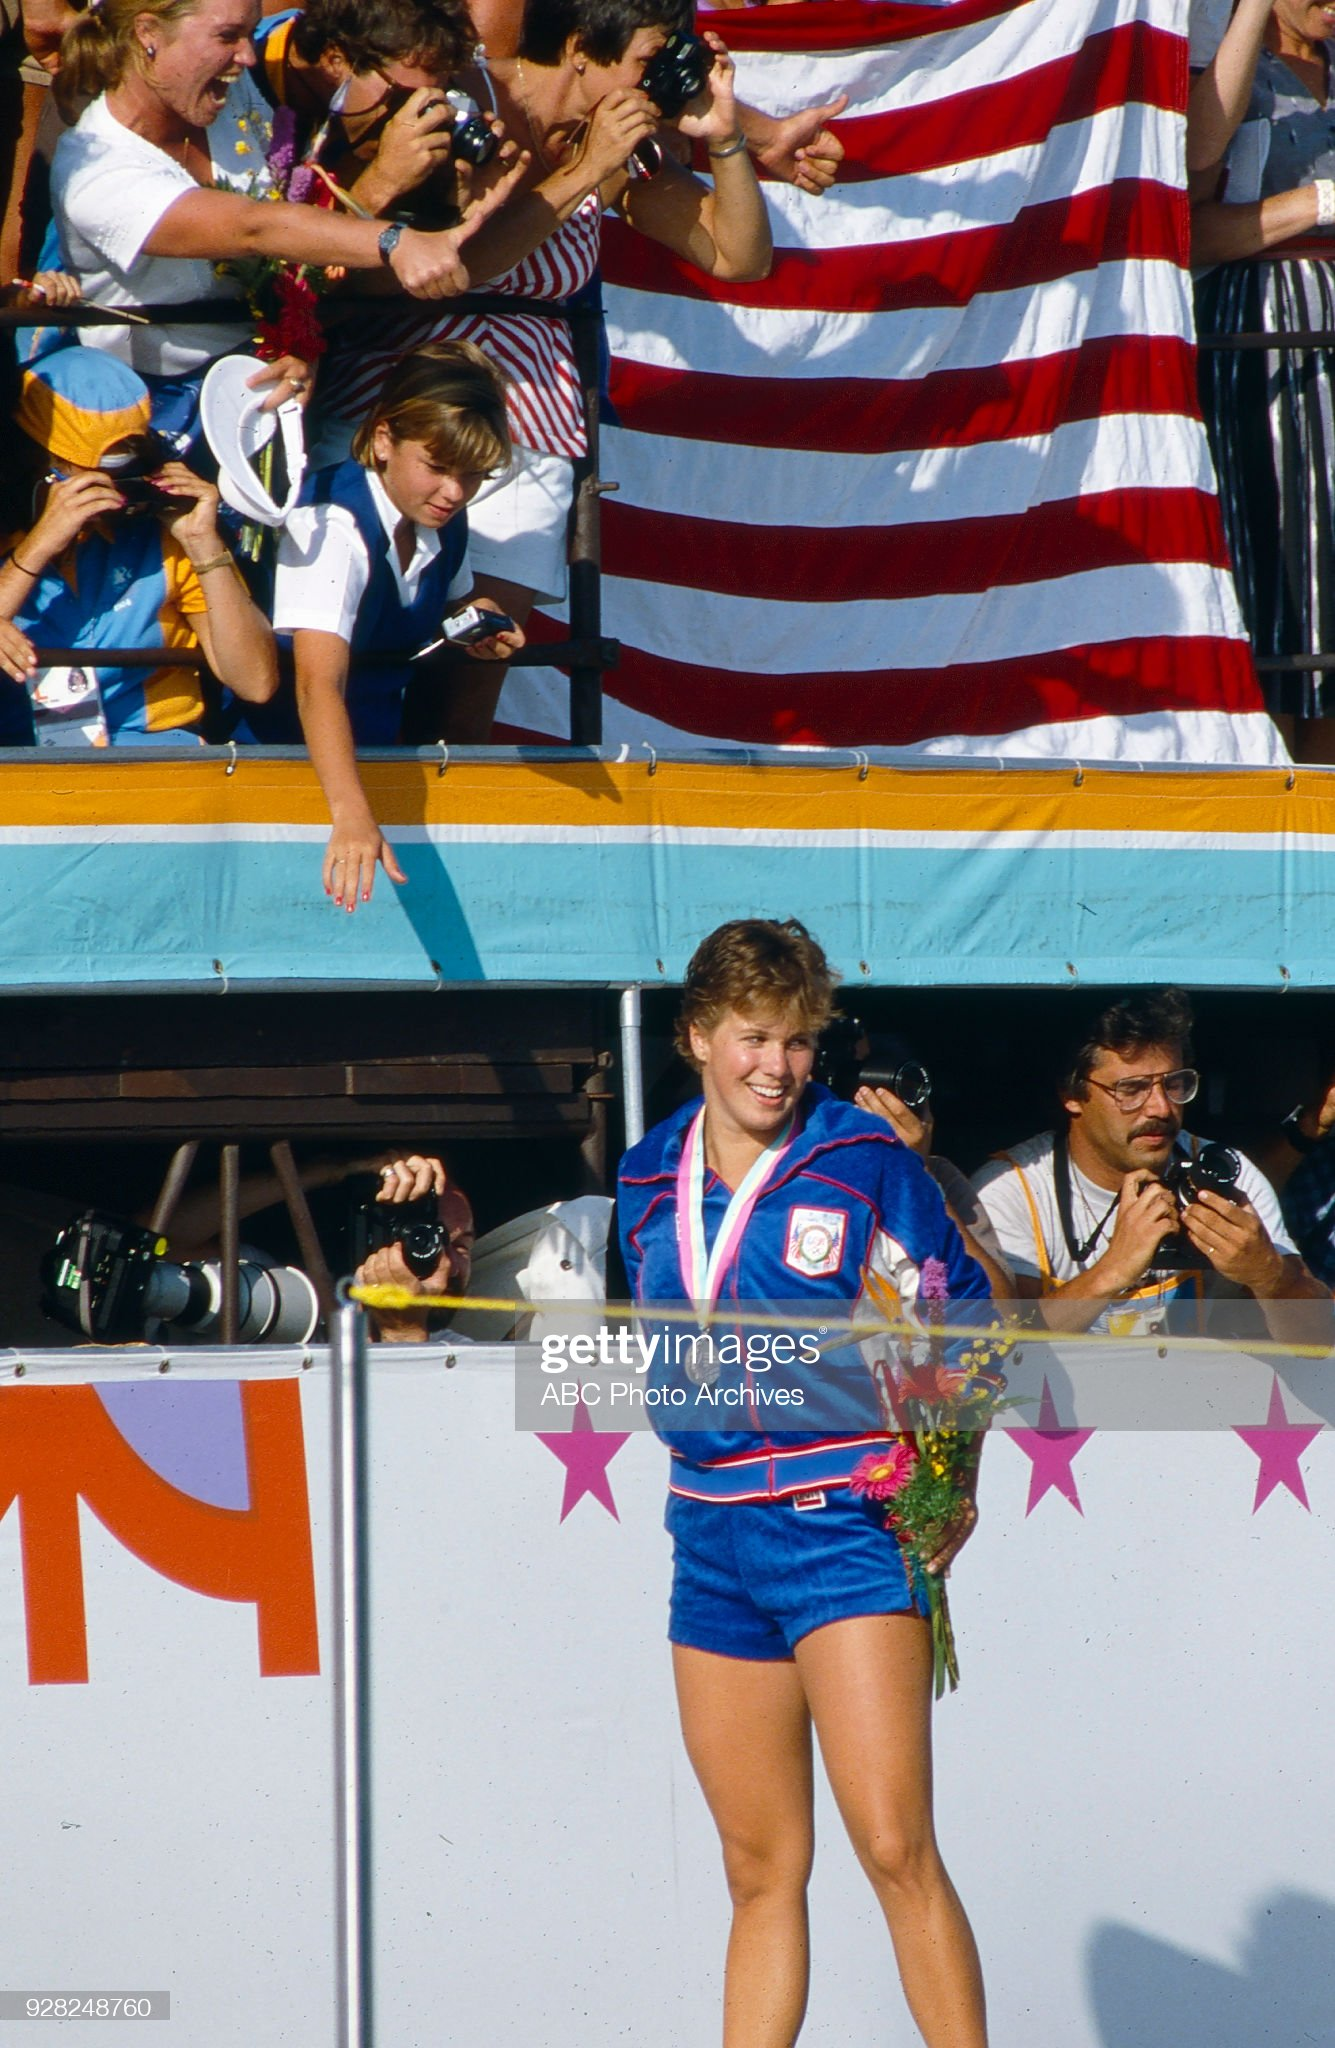 Women's Swimming 100 Metre Backstroke Medal Ceremony At The 1984 Summer Olympics : Fotografía de noticias